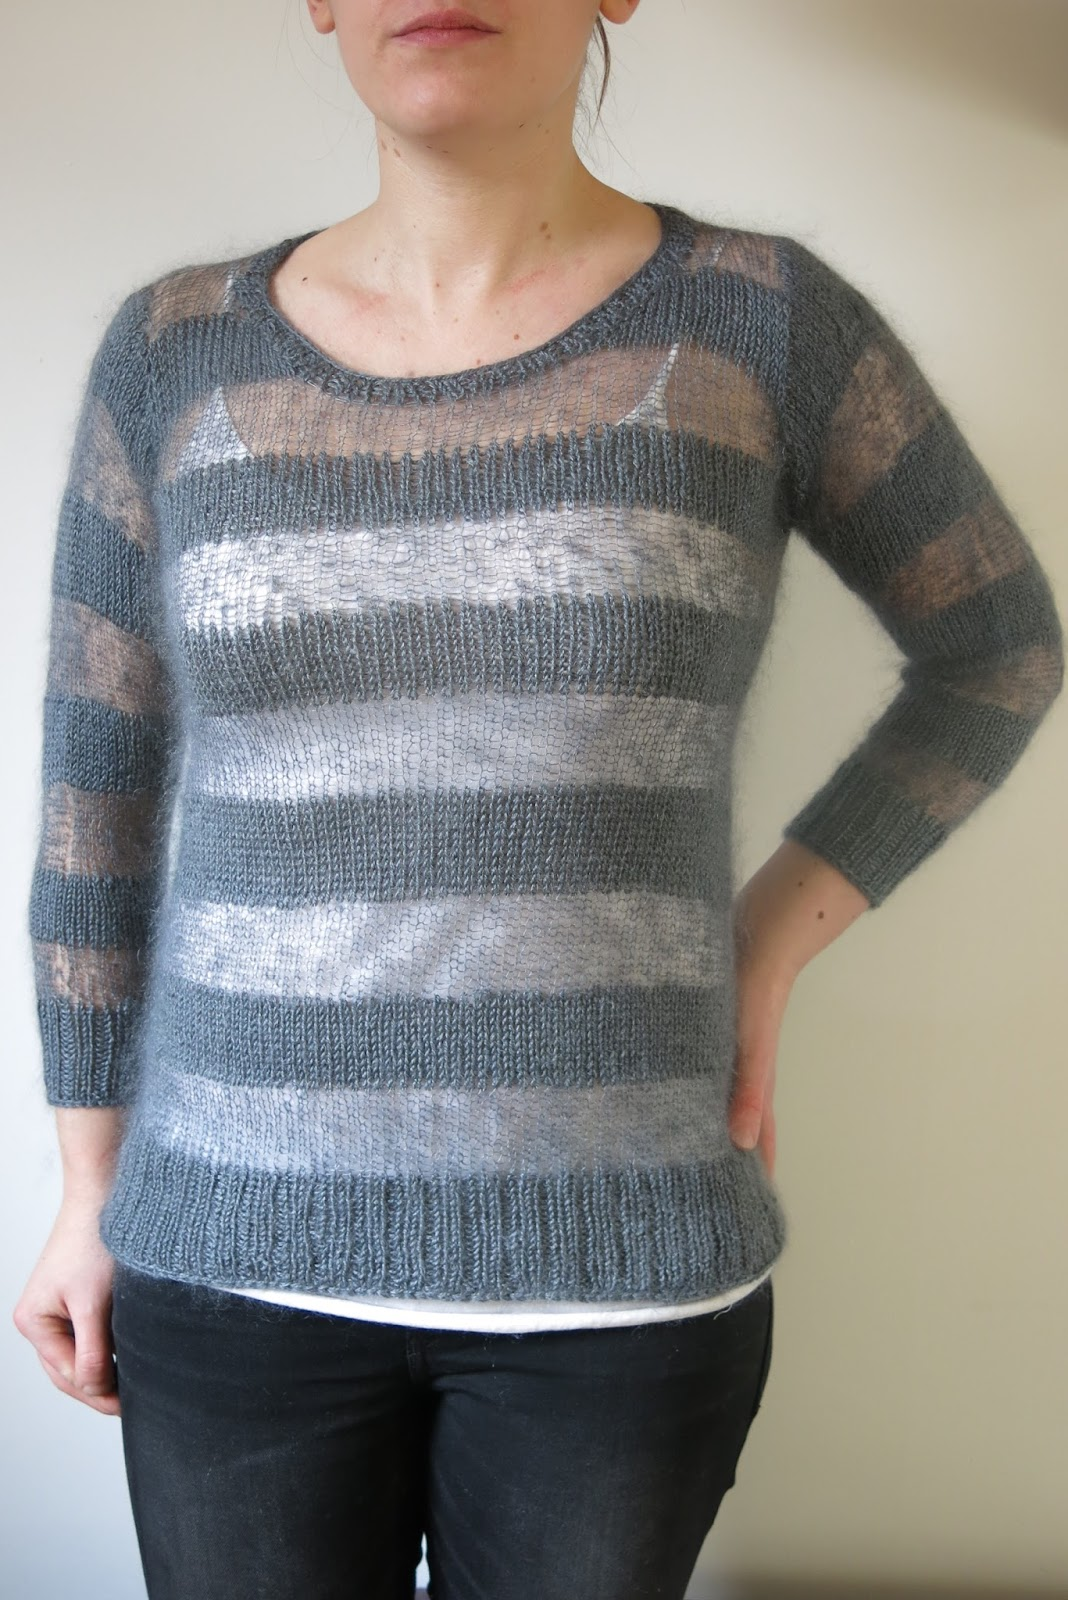 littletheorem: Mountain Everlasting Sweater